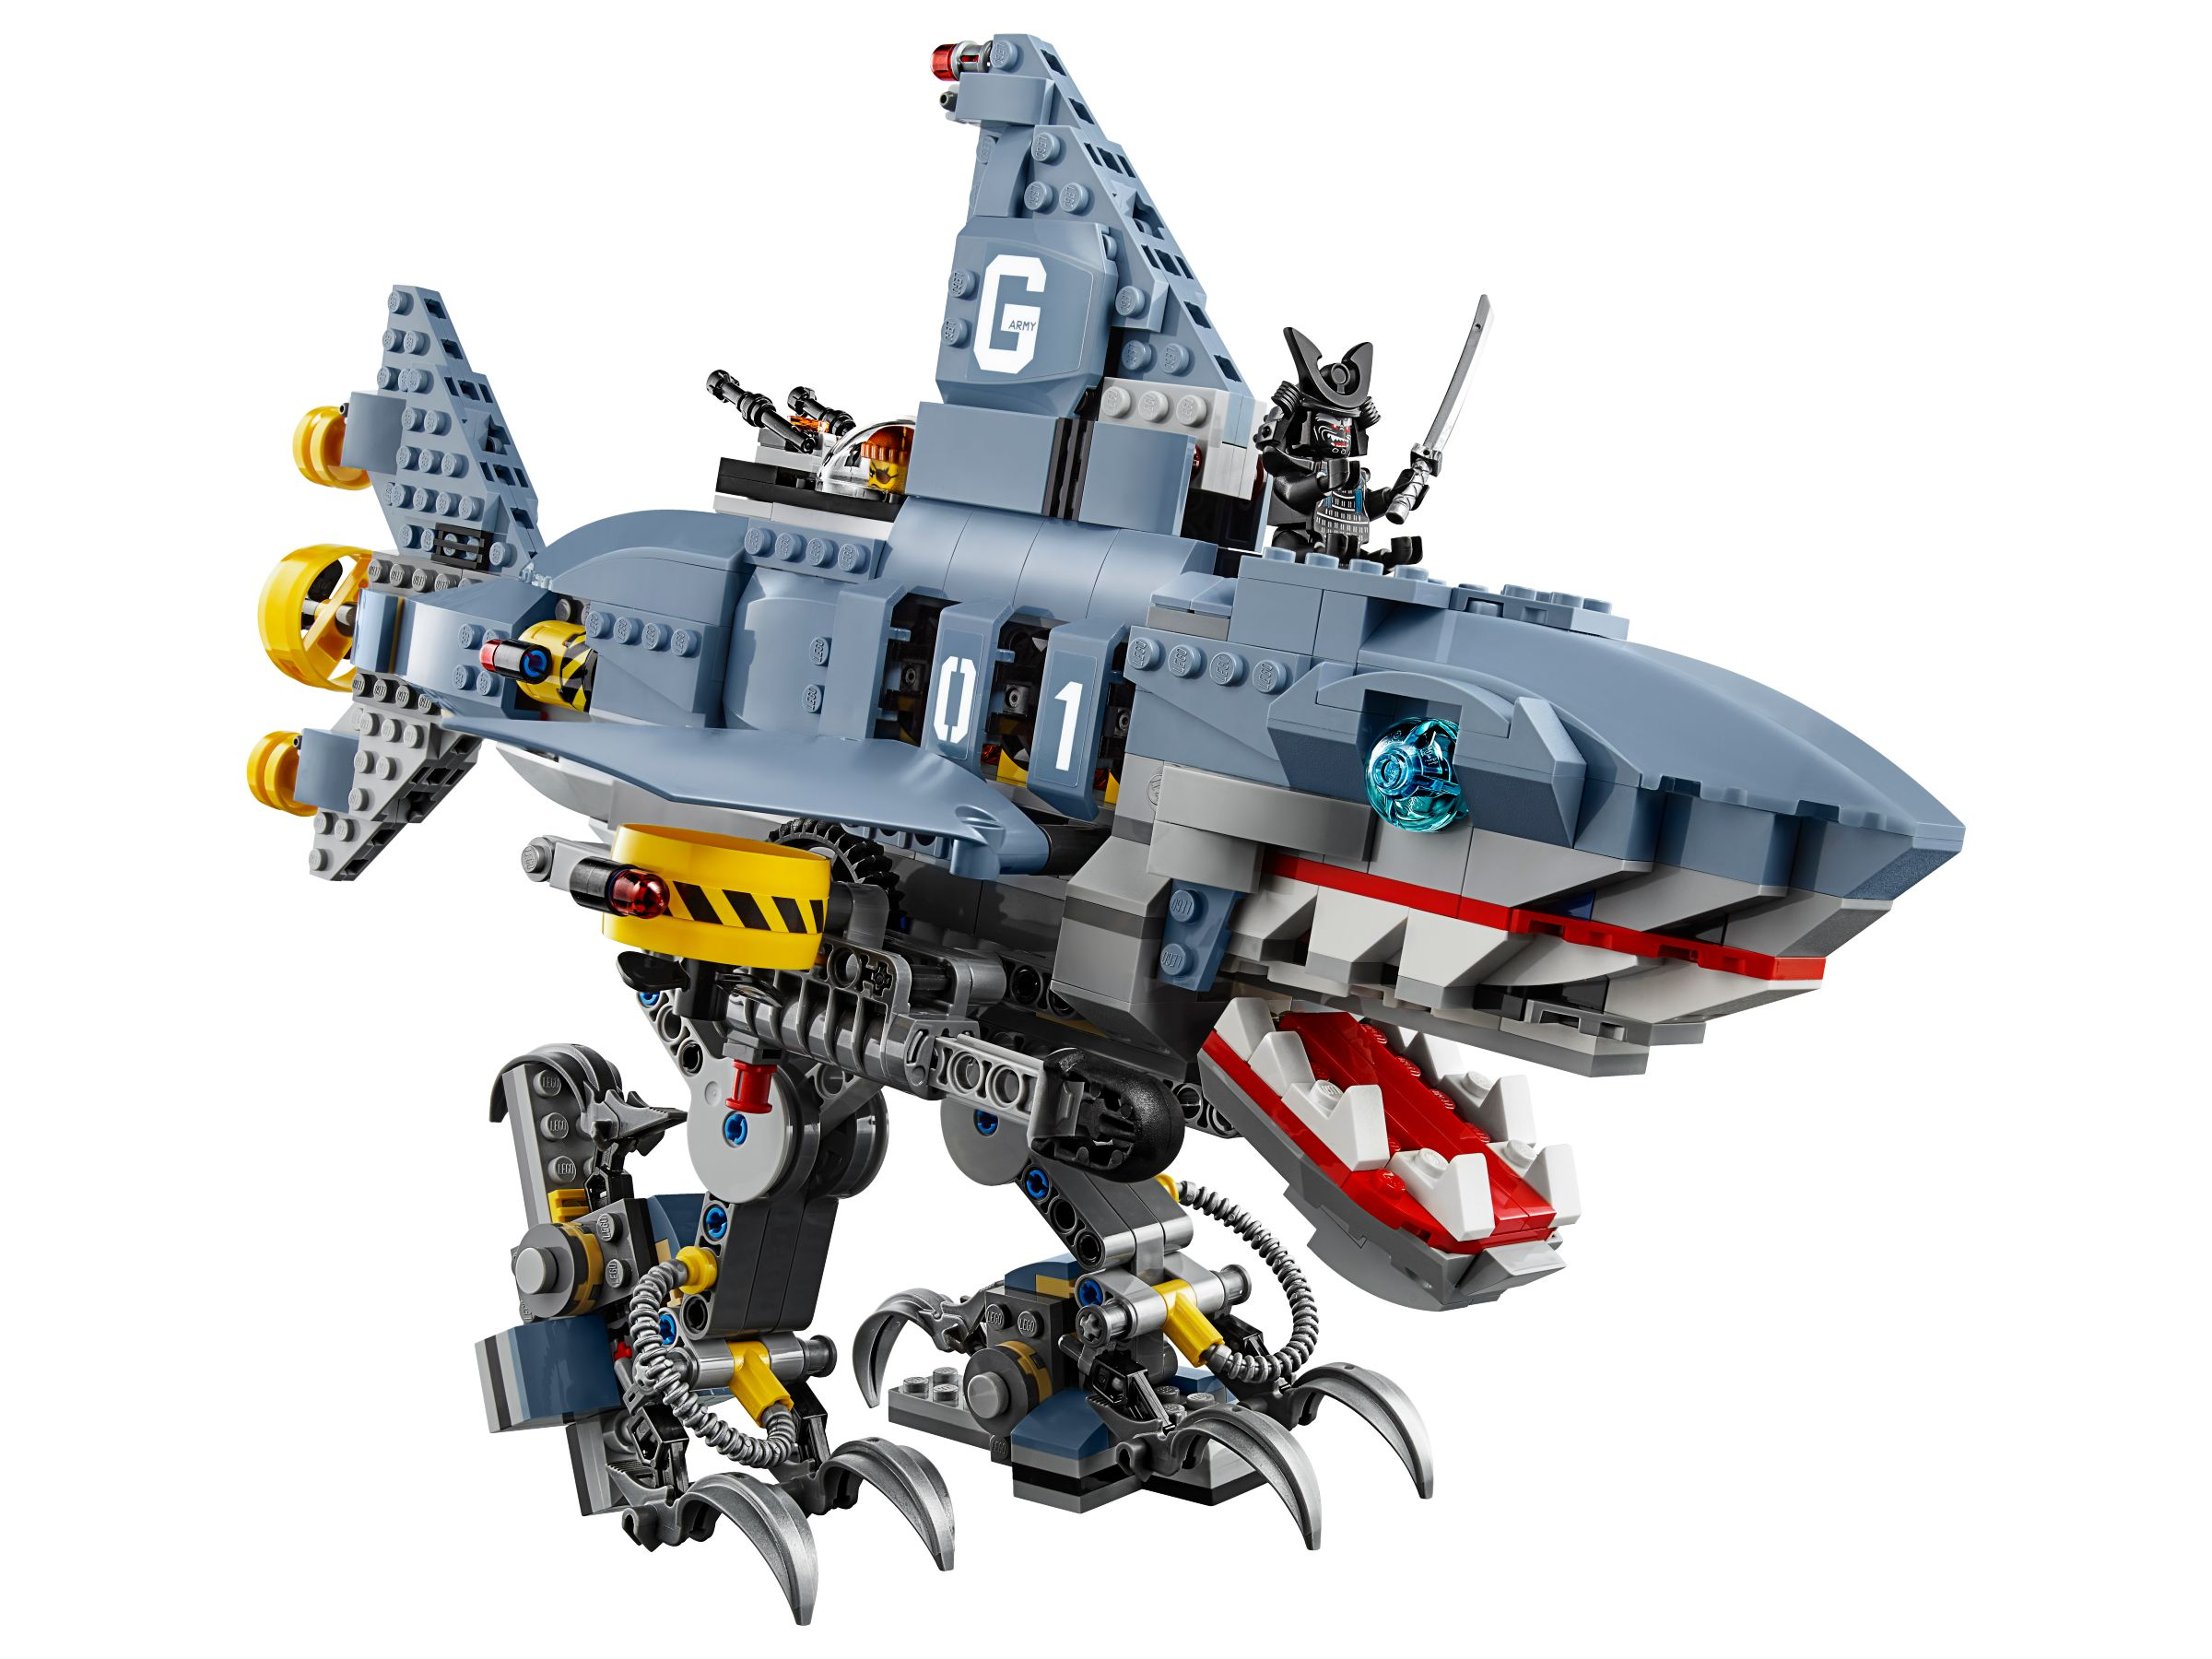 LEGO The LEGO Ninjago Movie 70656 Garmadon, Garmadon, GARMADON! LEGO_70656_alt2.jpg